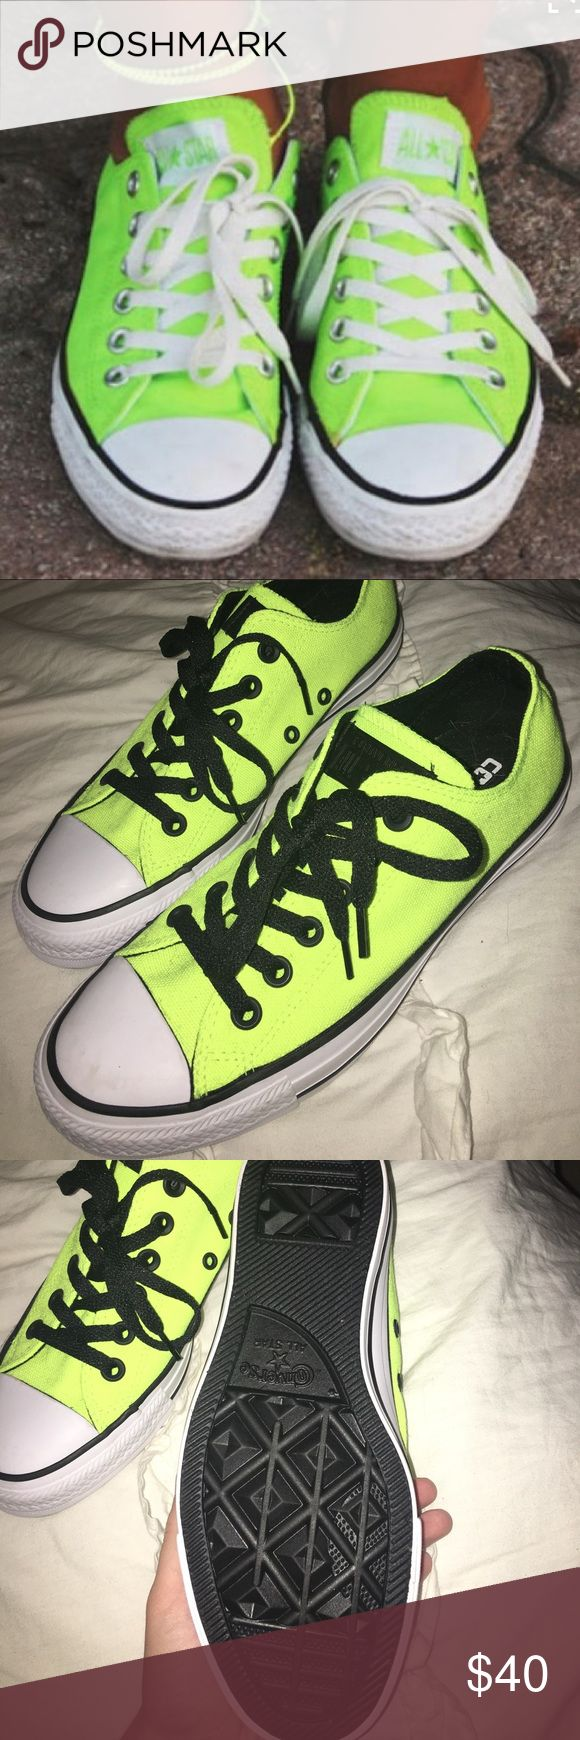 neon yellow low top converse neon yellow low top converse with black laces & NEVER WORN!!! Converse Shoes Sneakers